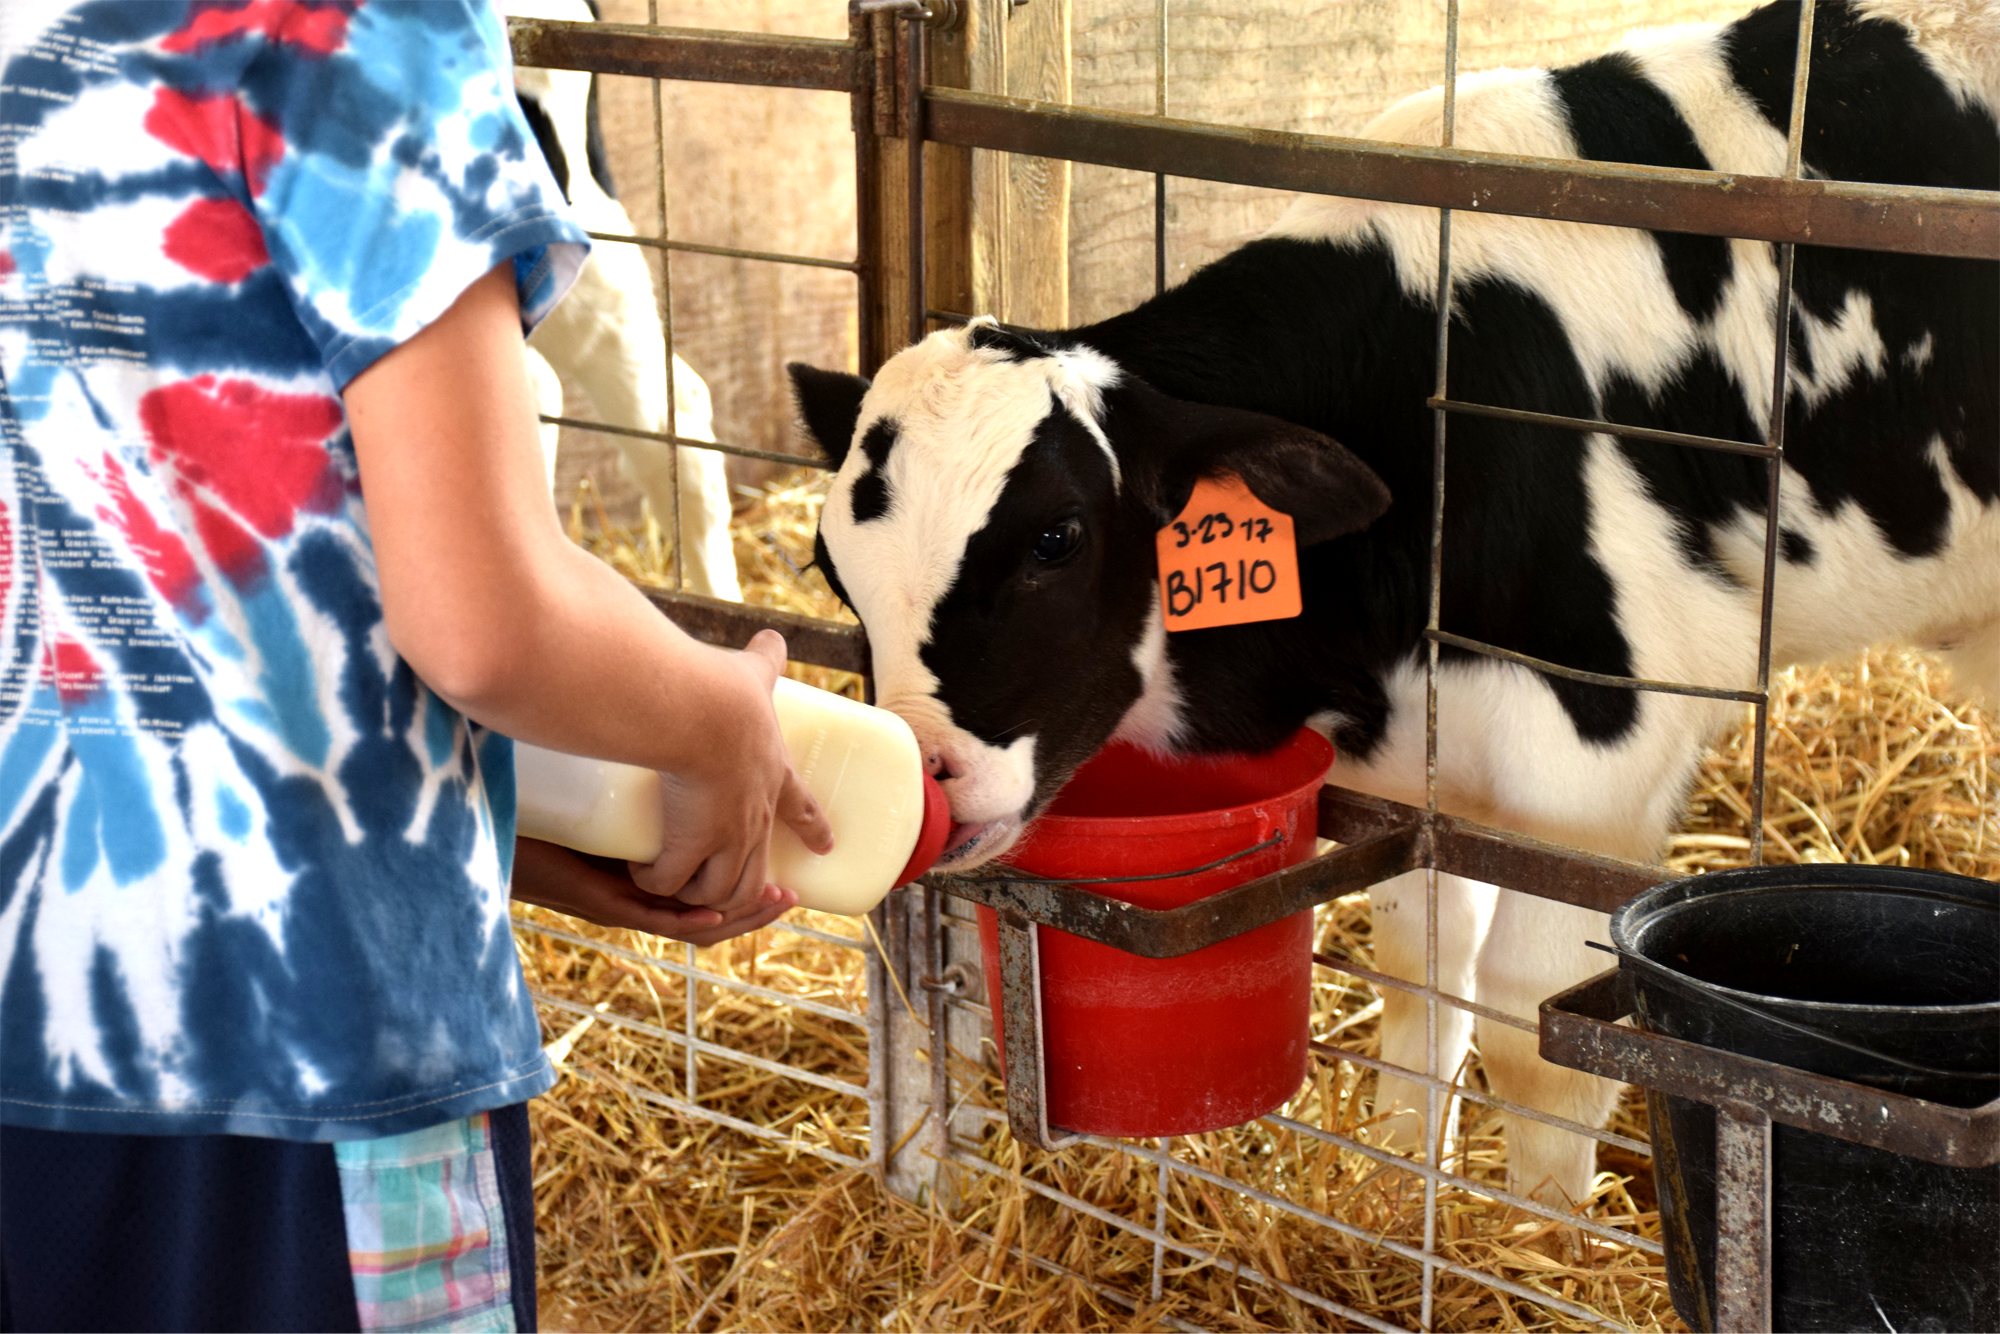 South Mountain Creamery in Middletown, Md., allows visitors to feed the calves each day at 4 p.m.{ }(Image: Courtesy South Mountain Creamery)